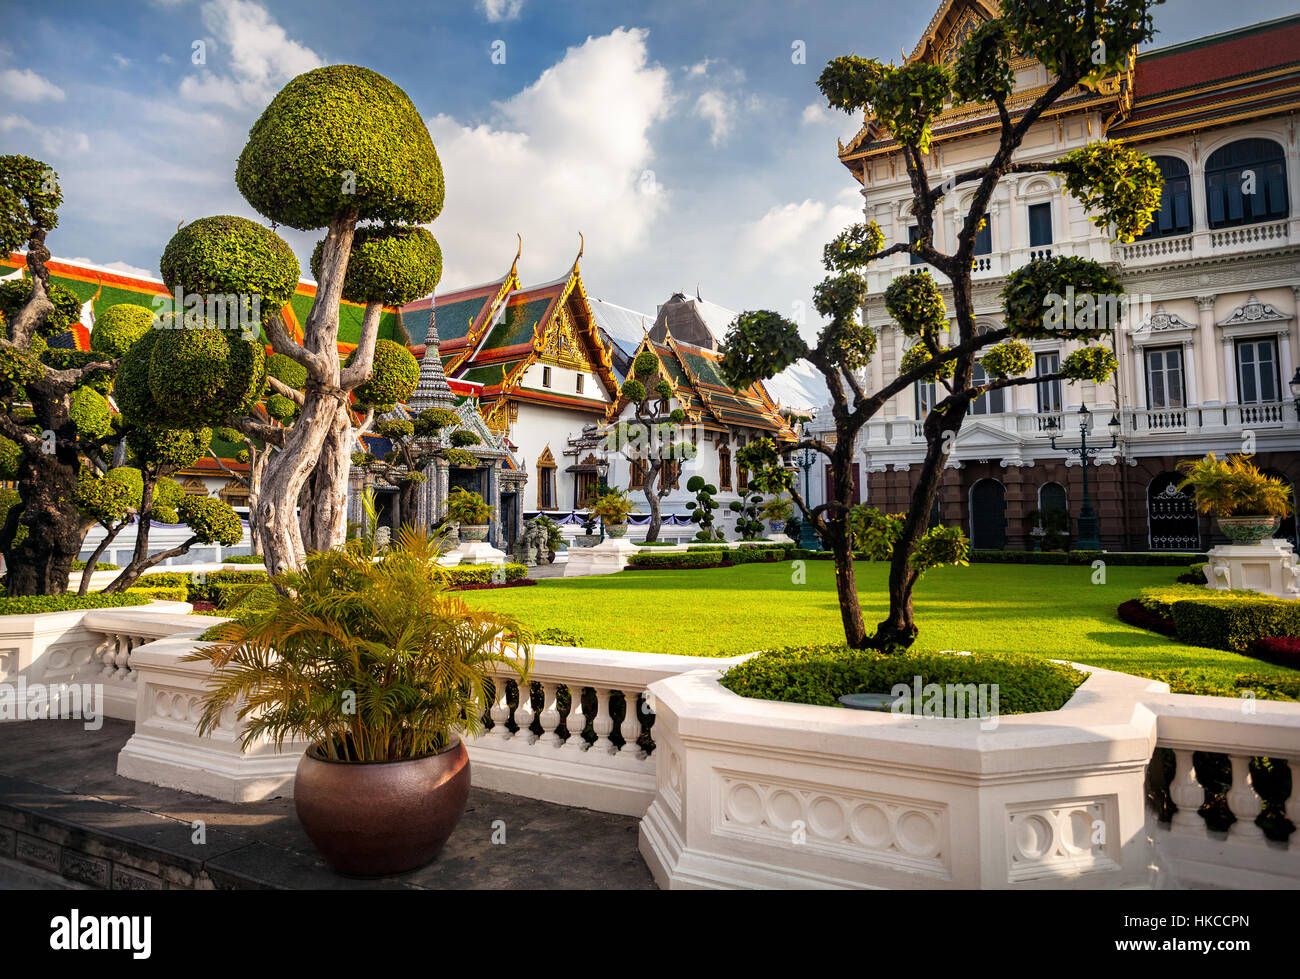 Grand Palace with topiary garden at sunny day in Bangkok, Thailand - Stock Image